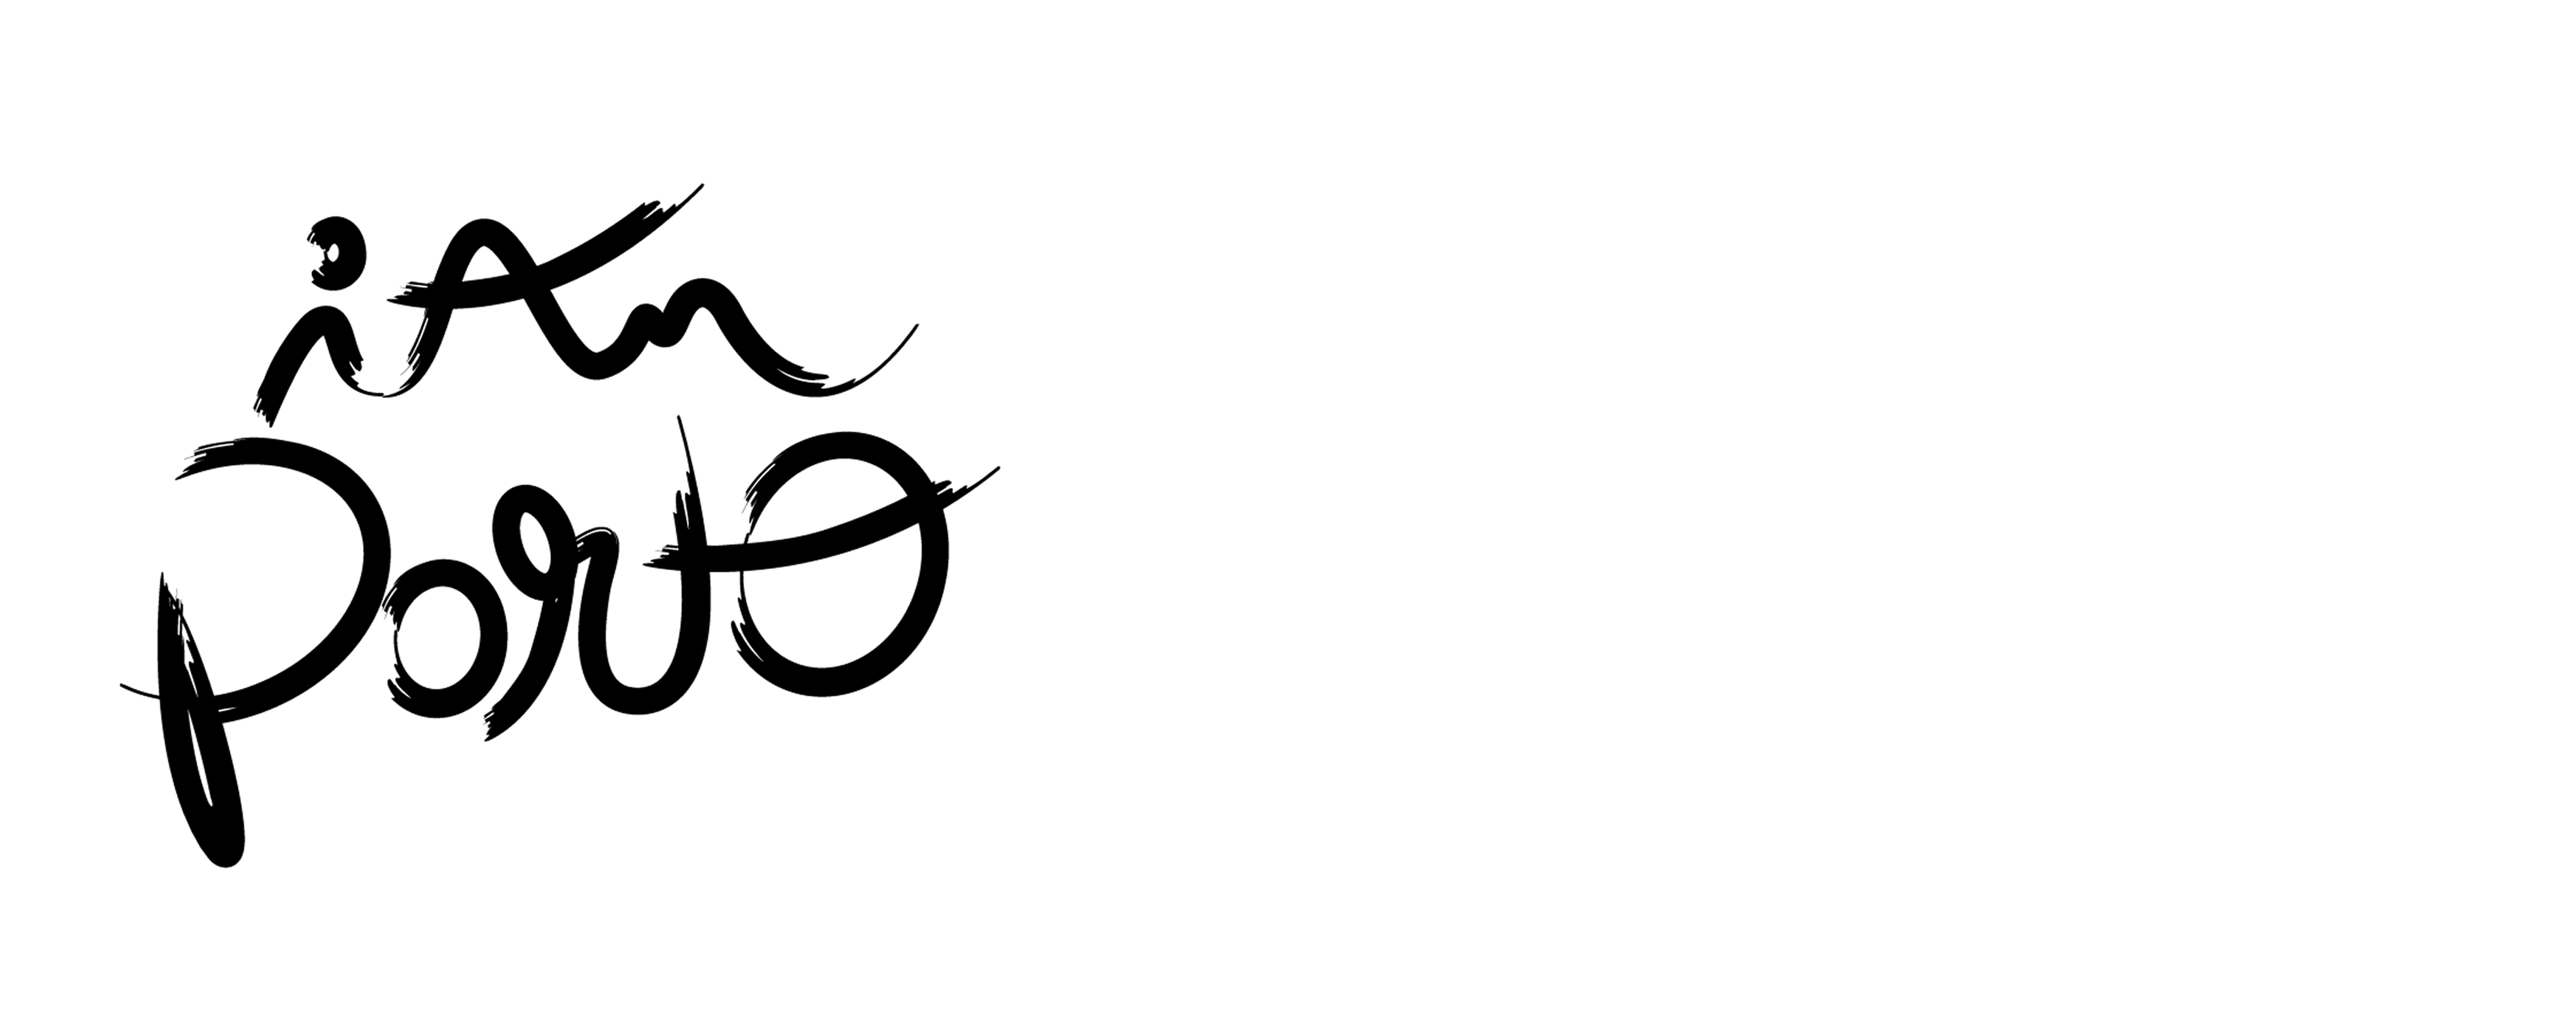 Dallas - Ideias à Moda do Porto